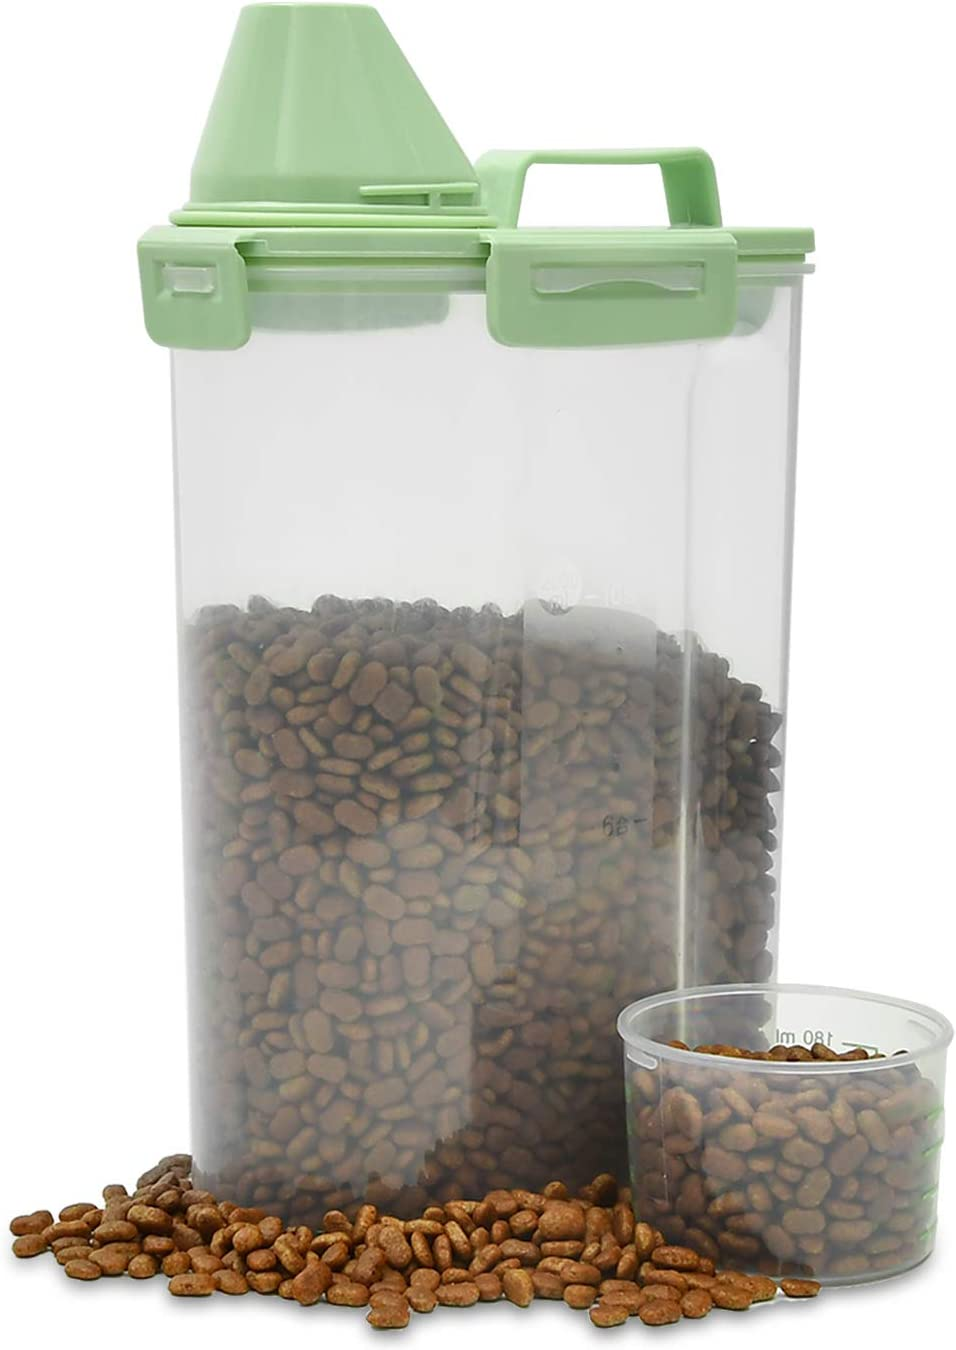 FC Pet Food Container, Dog Food Storage with Measuring Cup and Pour Spout, Airtight Plastic Containers with Four Clasps for Dogs, Cats, Birds.